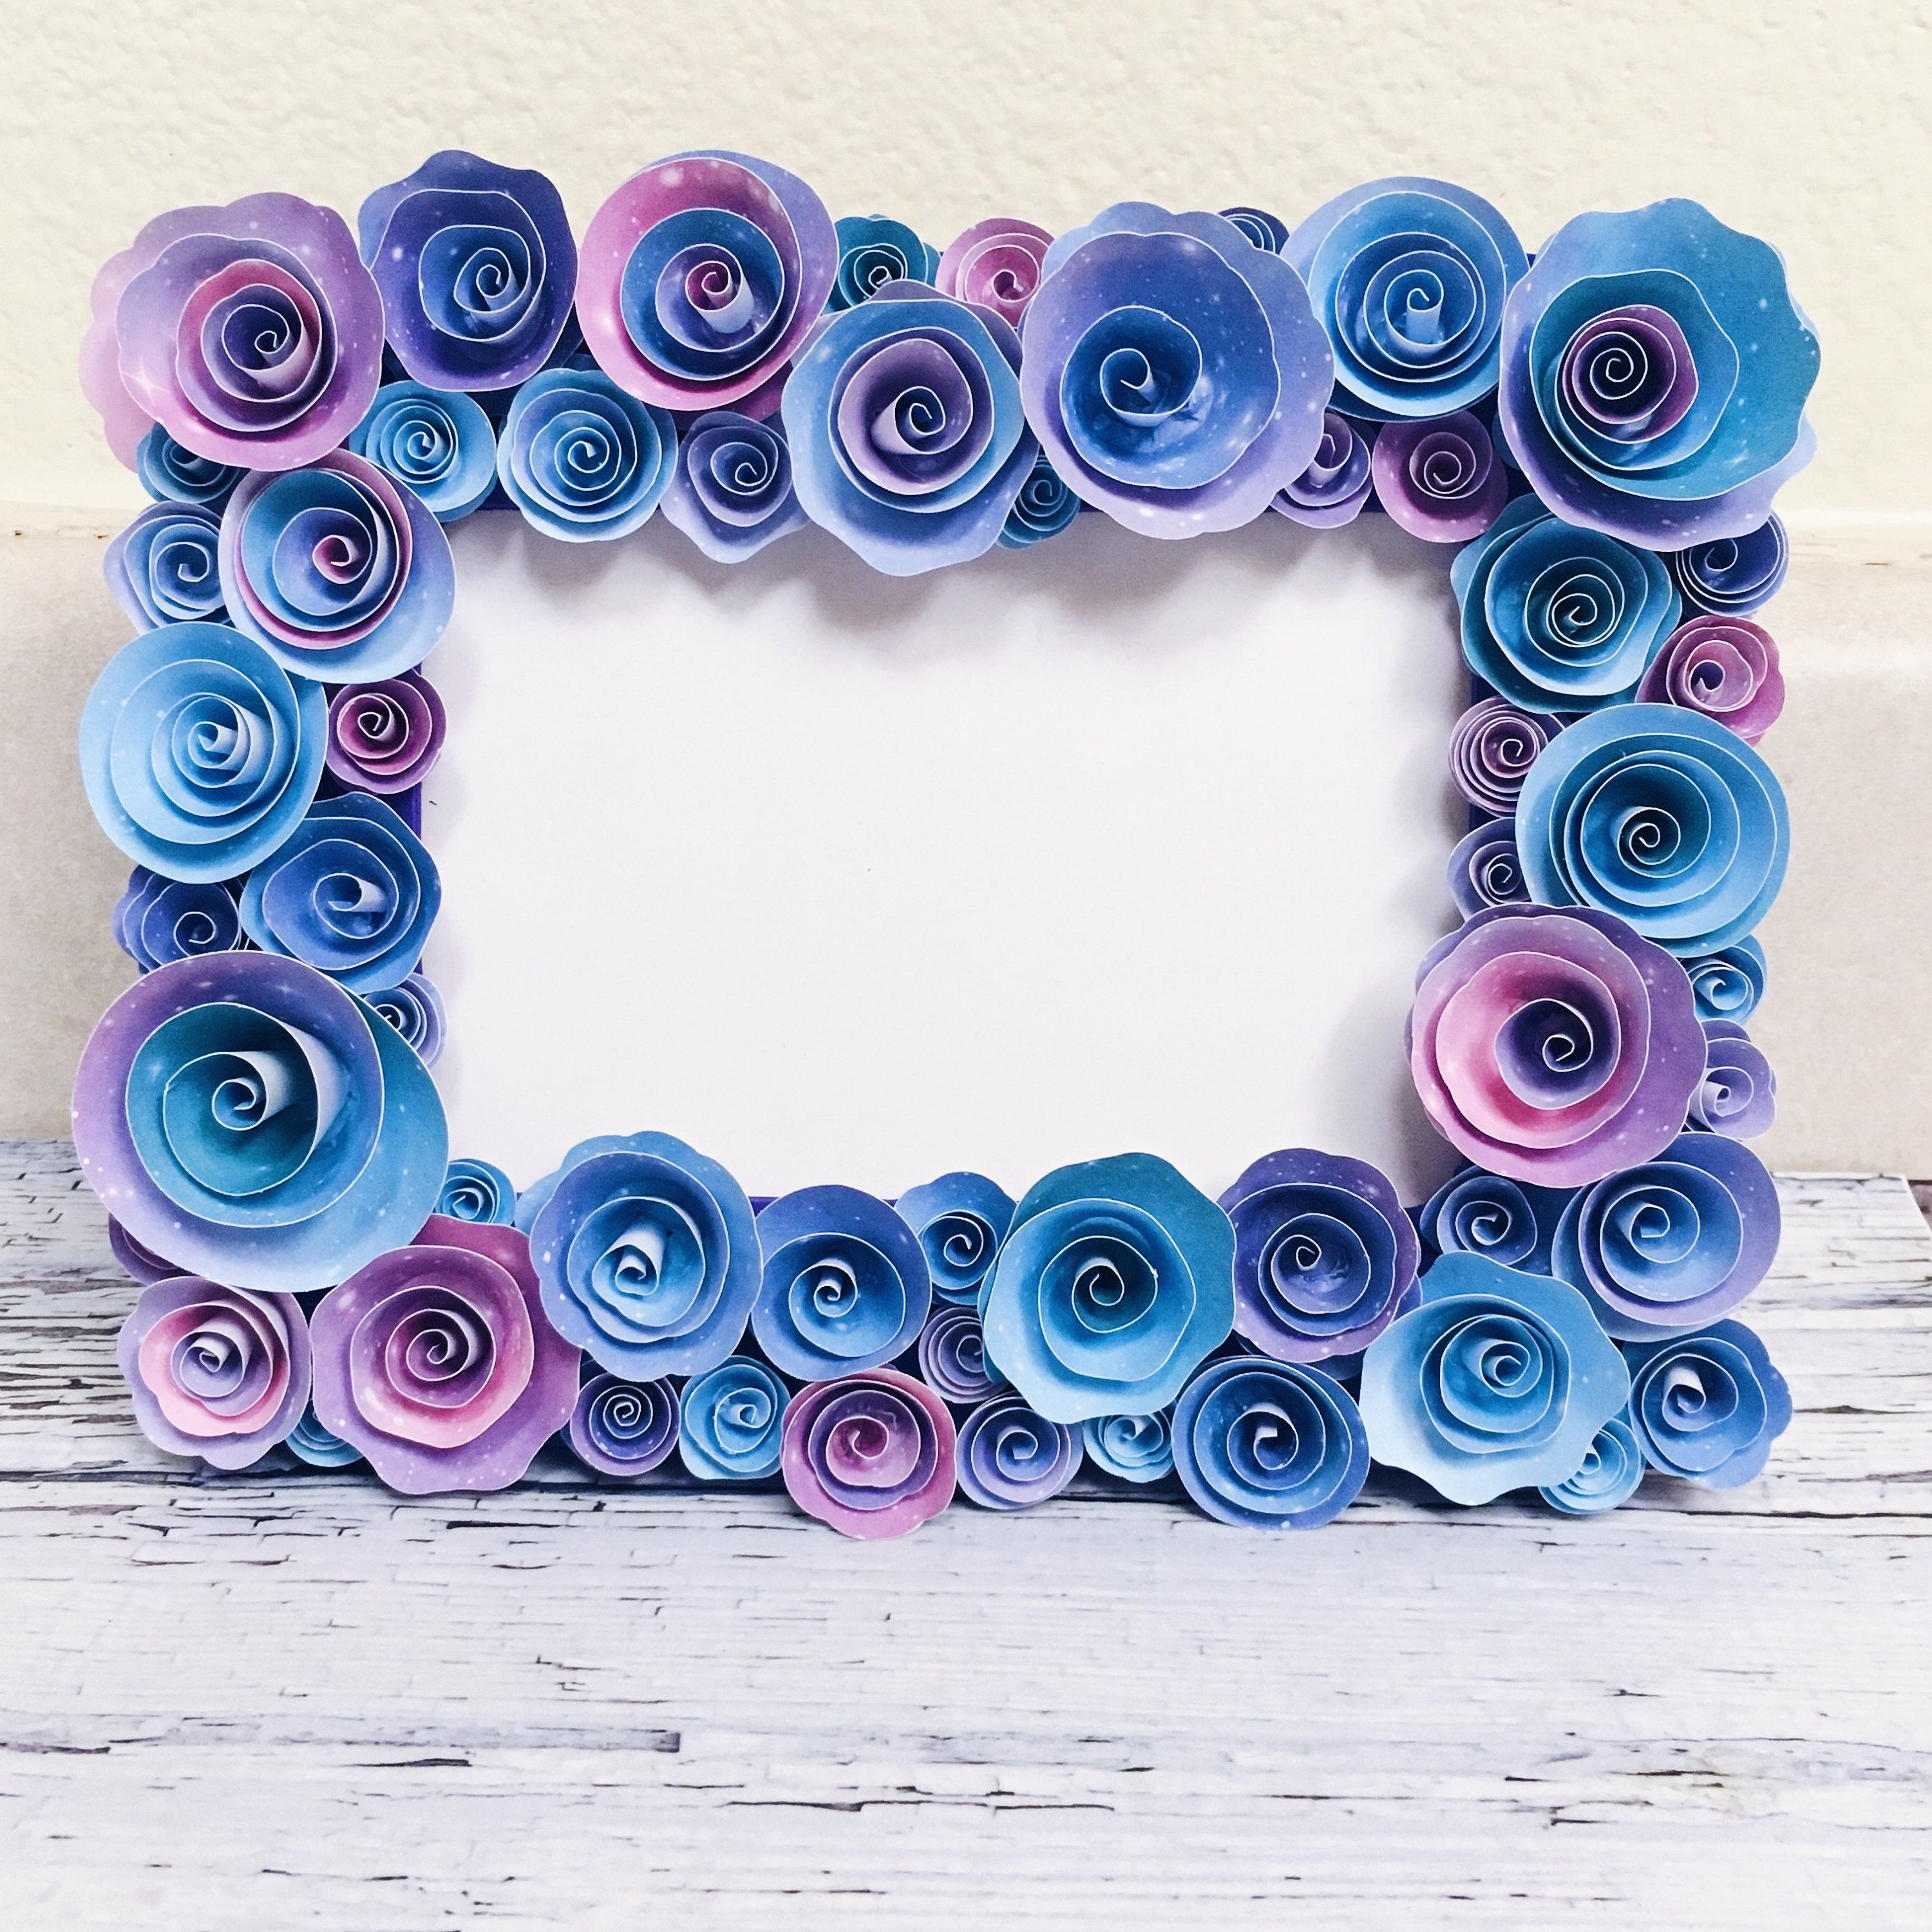 PHOTO FRAME HAND MADE REAL ROSES